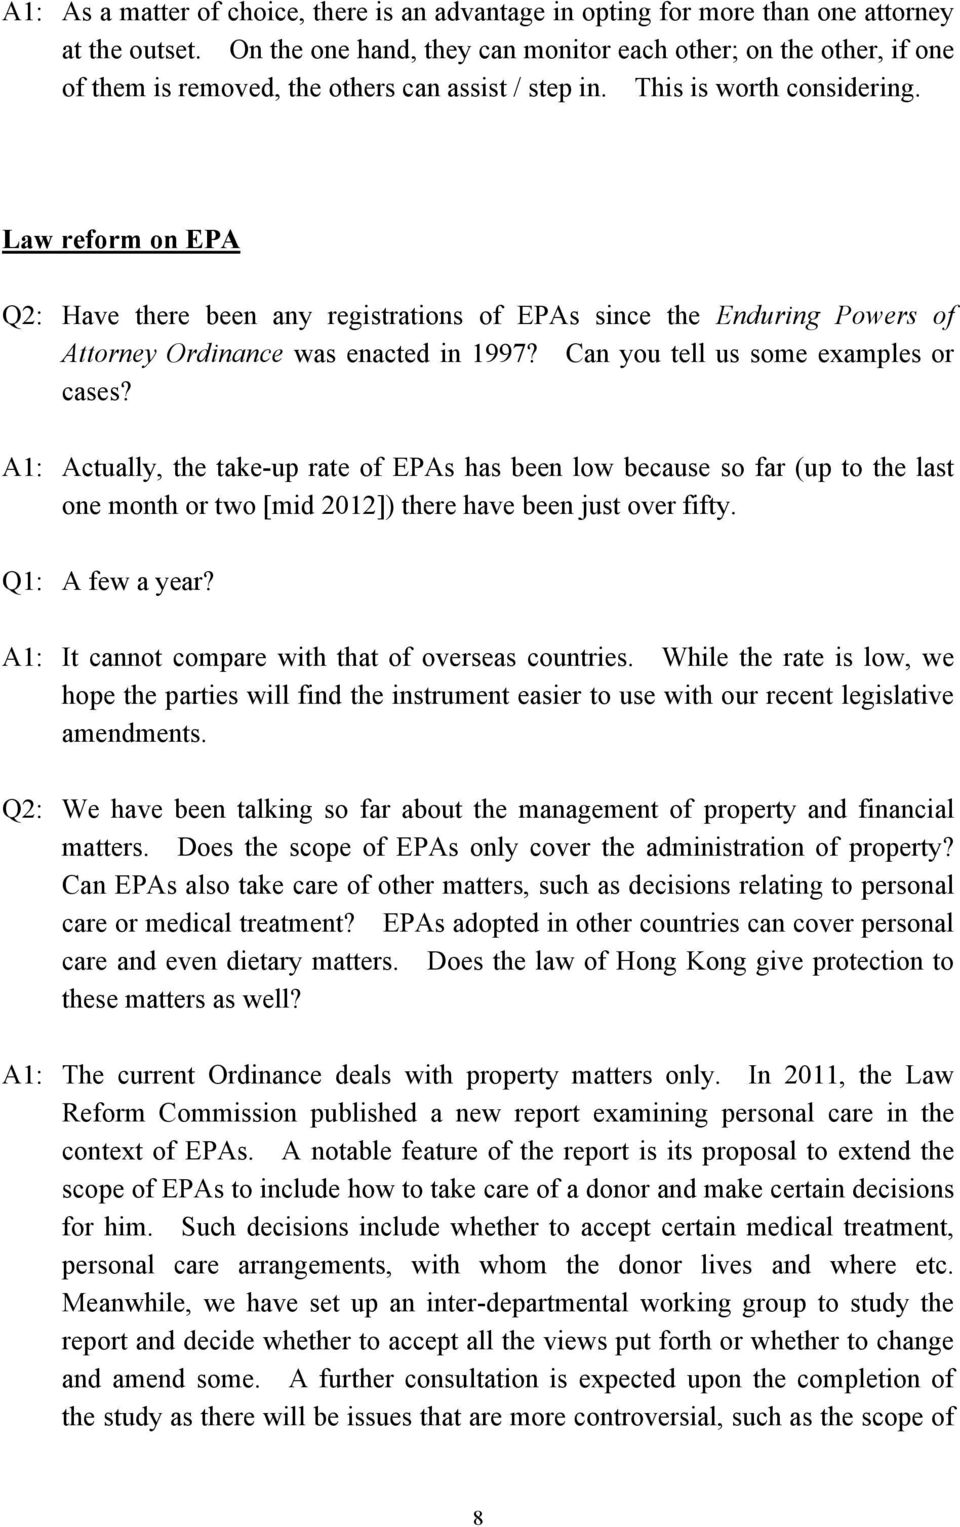 Law reform on EPA Q2: Have there been any registrations of EPAs since the Enduring Powers of Attorney Ordinance was enacted in 1997? Can you tell us some examples or cases?